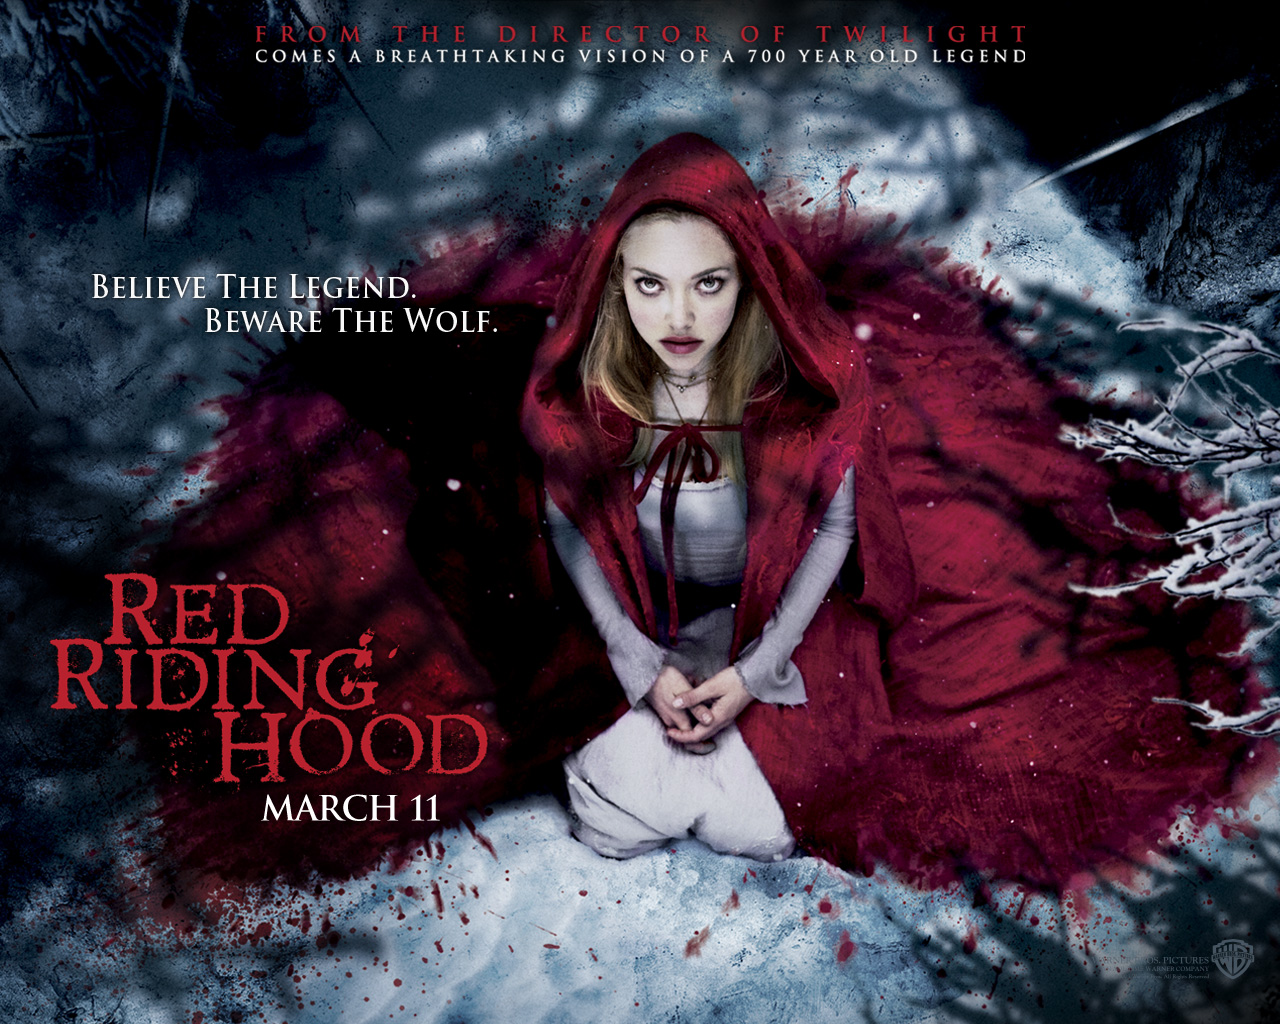 http://1.bp.blogspot.com/-0kLans7vkO8/TliWyf4wEkI/AAAAAAAACZY/Qb4ak1RBwtU/s1600/Amanda_Seyfried_in_Red_Riding_Hood_Wallpaper_2_800.jpg